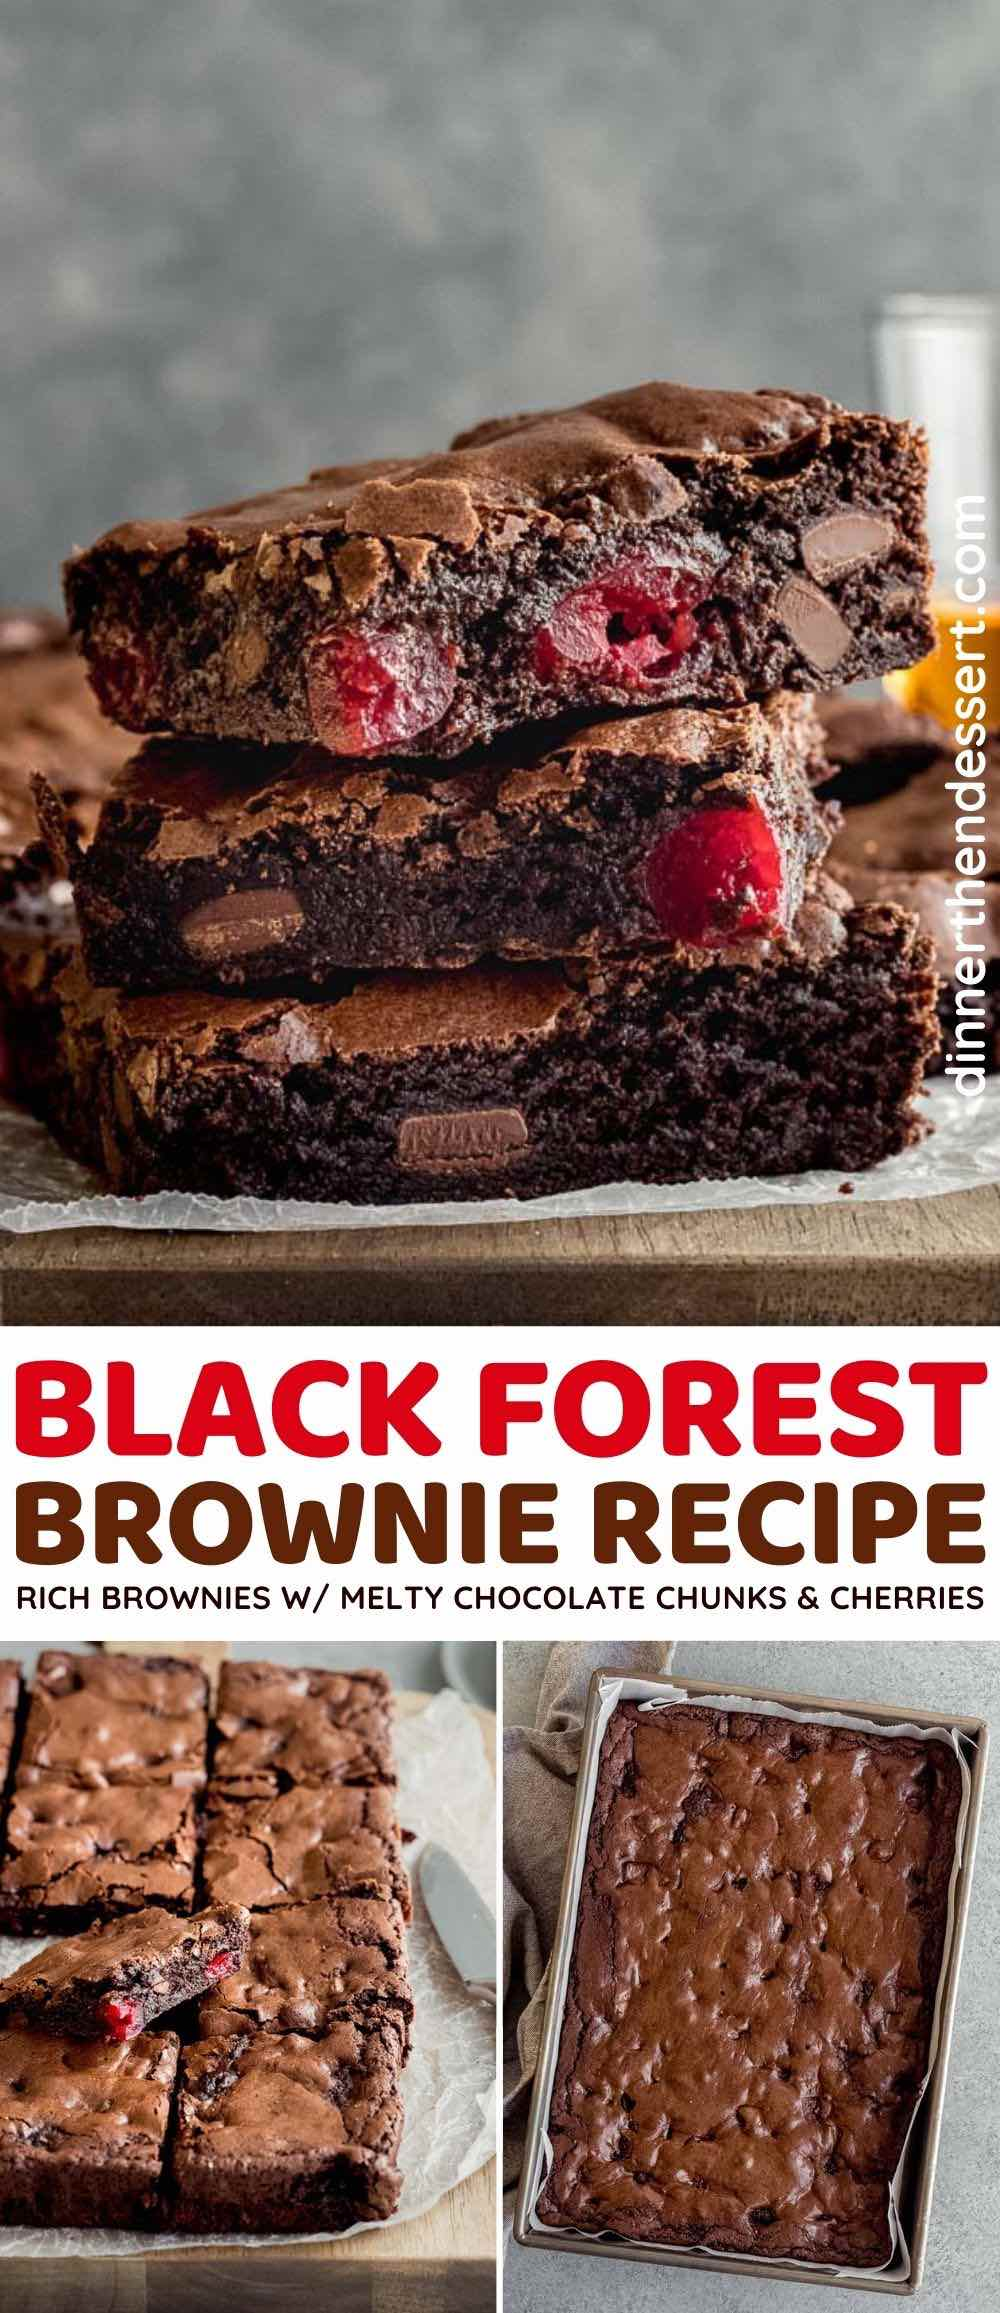 Black Forest Brownie collage